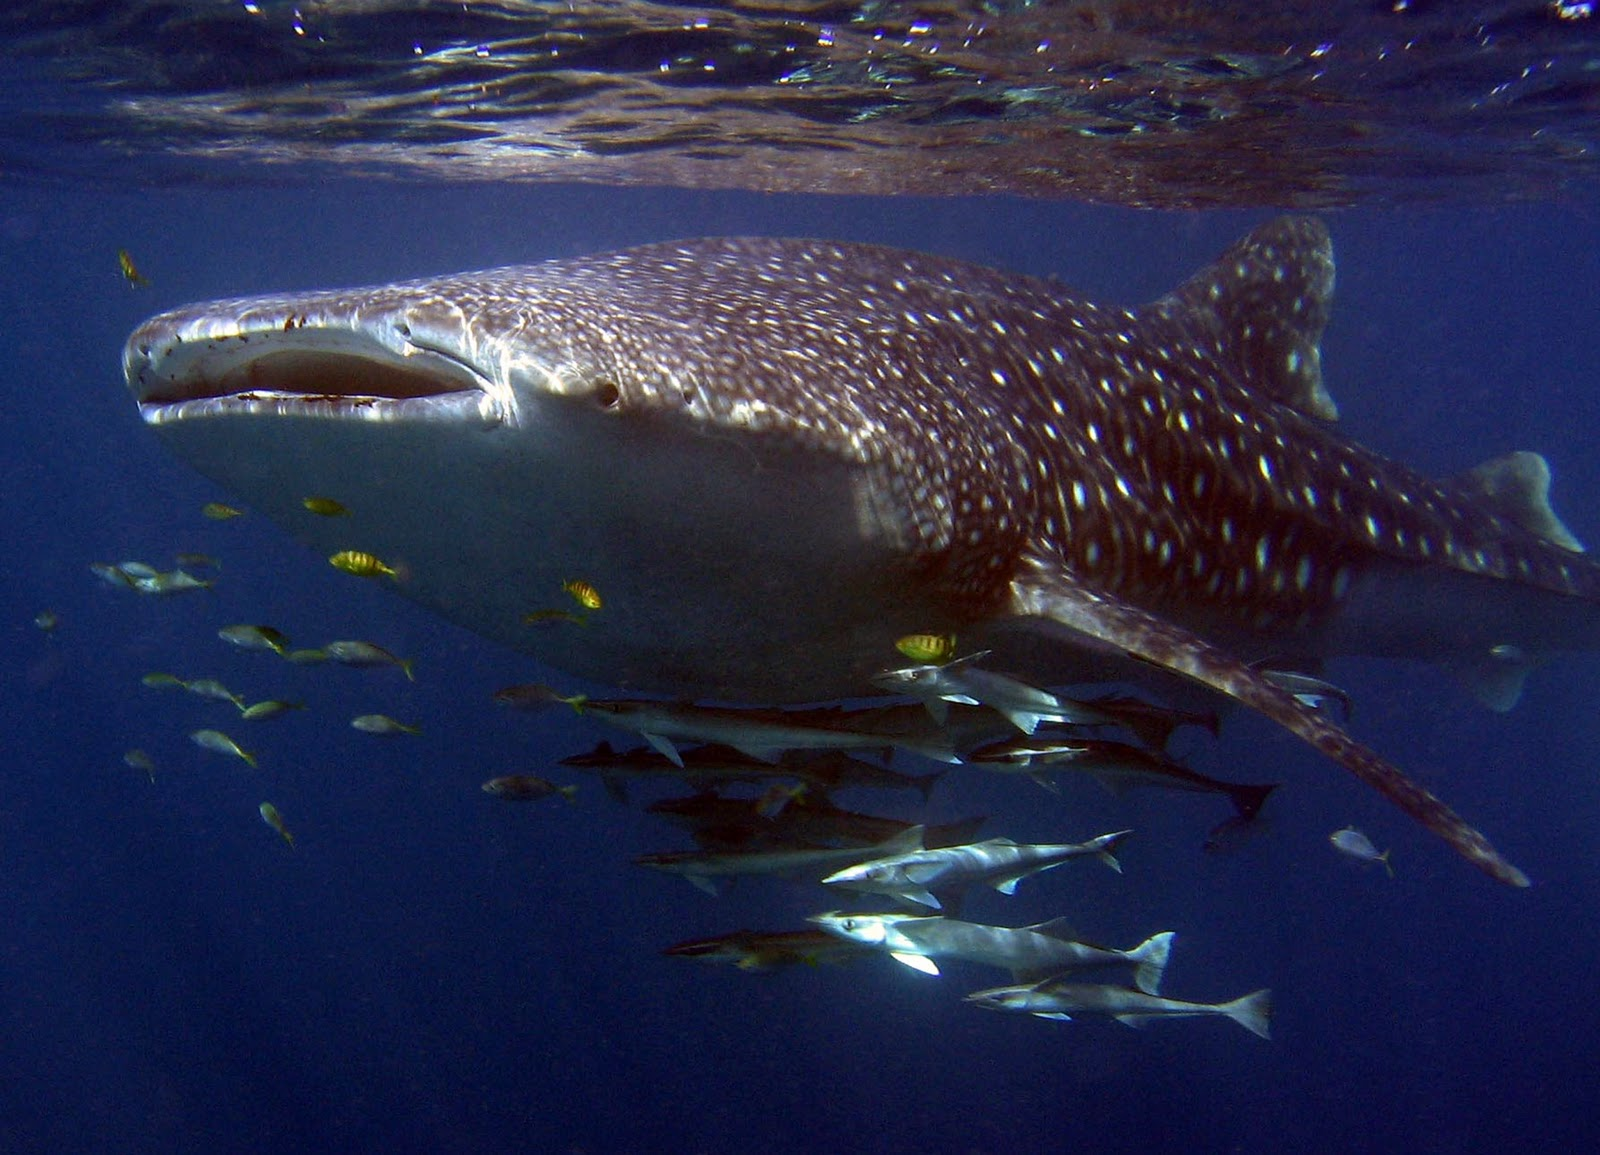 Giant Whale Shark http://javabackpacker.blogspot.com/2011/12/whale-sharks-giant-swimmer-at.html